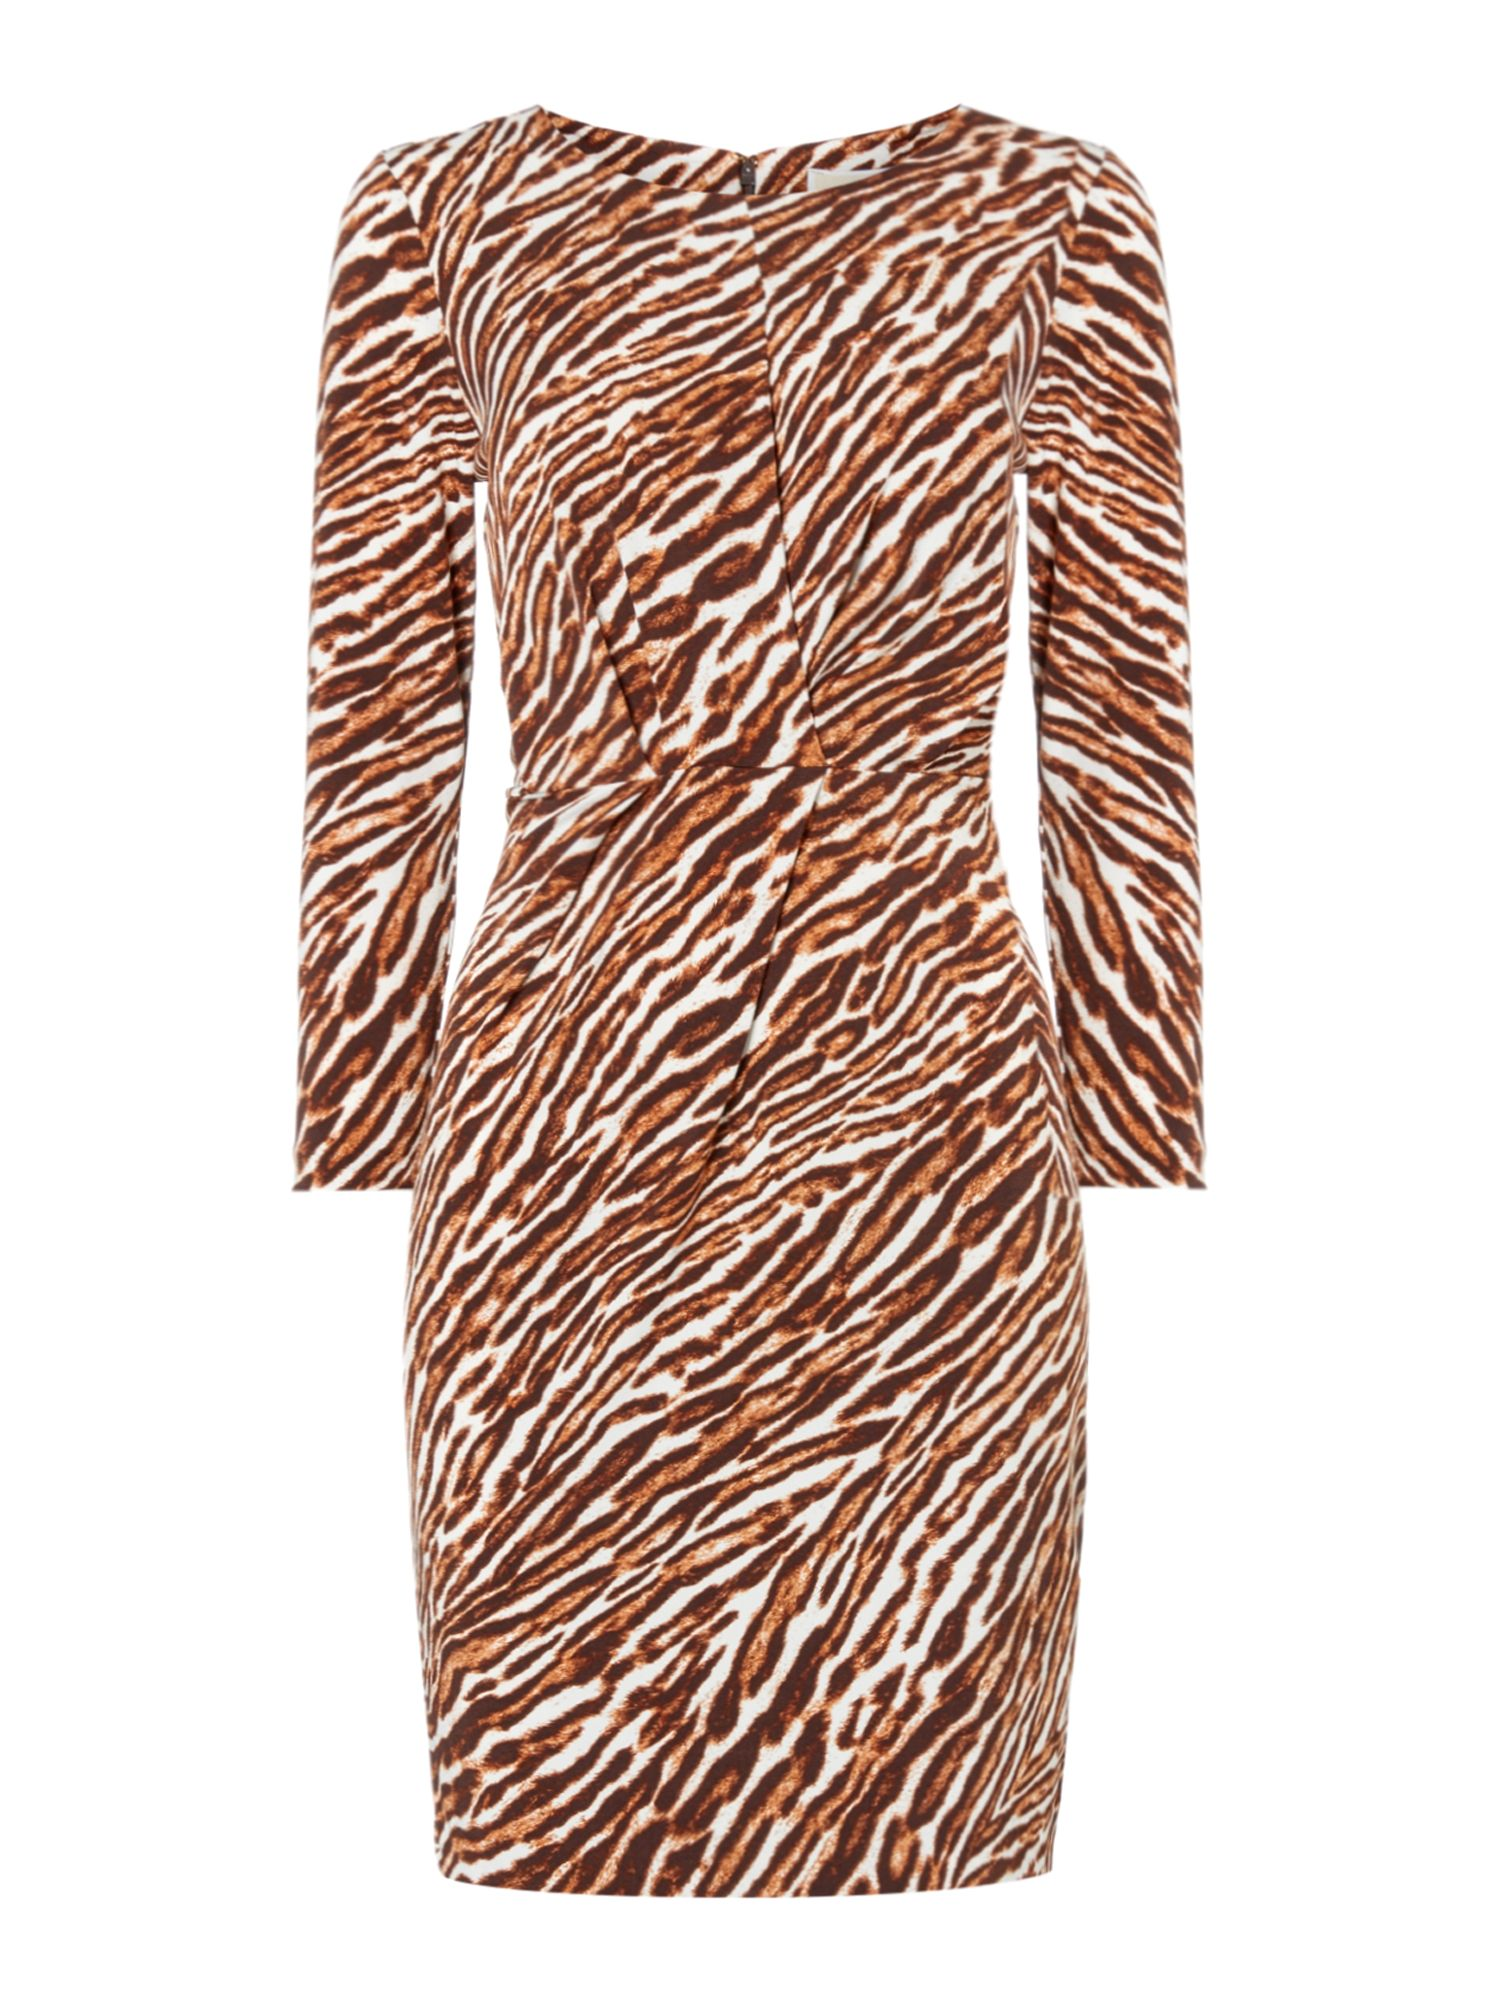 Michael Kors Exclusive safari pleat front dress, Brown